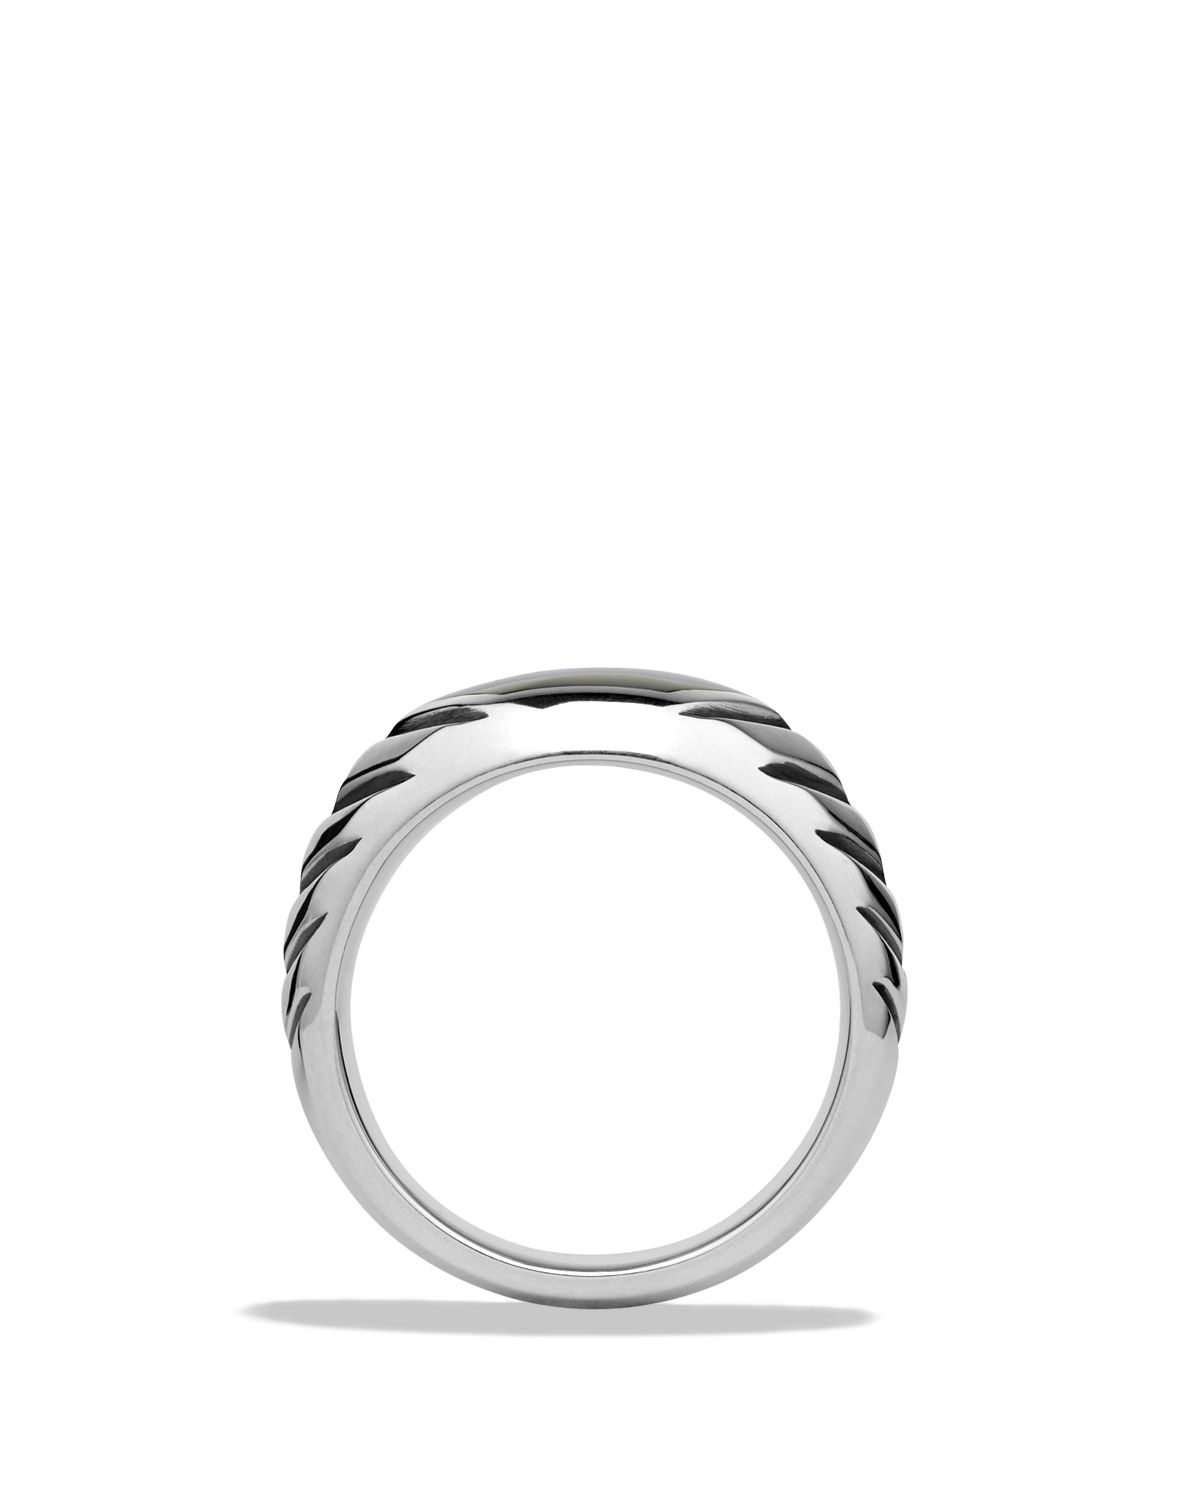 Lyst – David Yurman Modern Chevron Signet Ring With Black Onyx In With Regard To Most Up To Date Chevron Signet Rings (View 13 of 15)